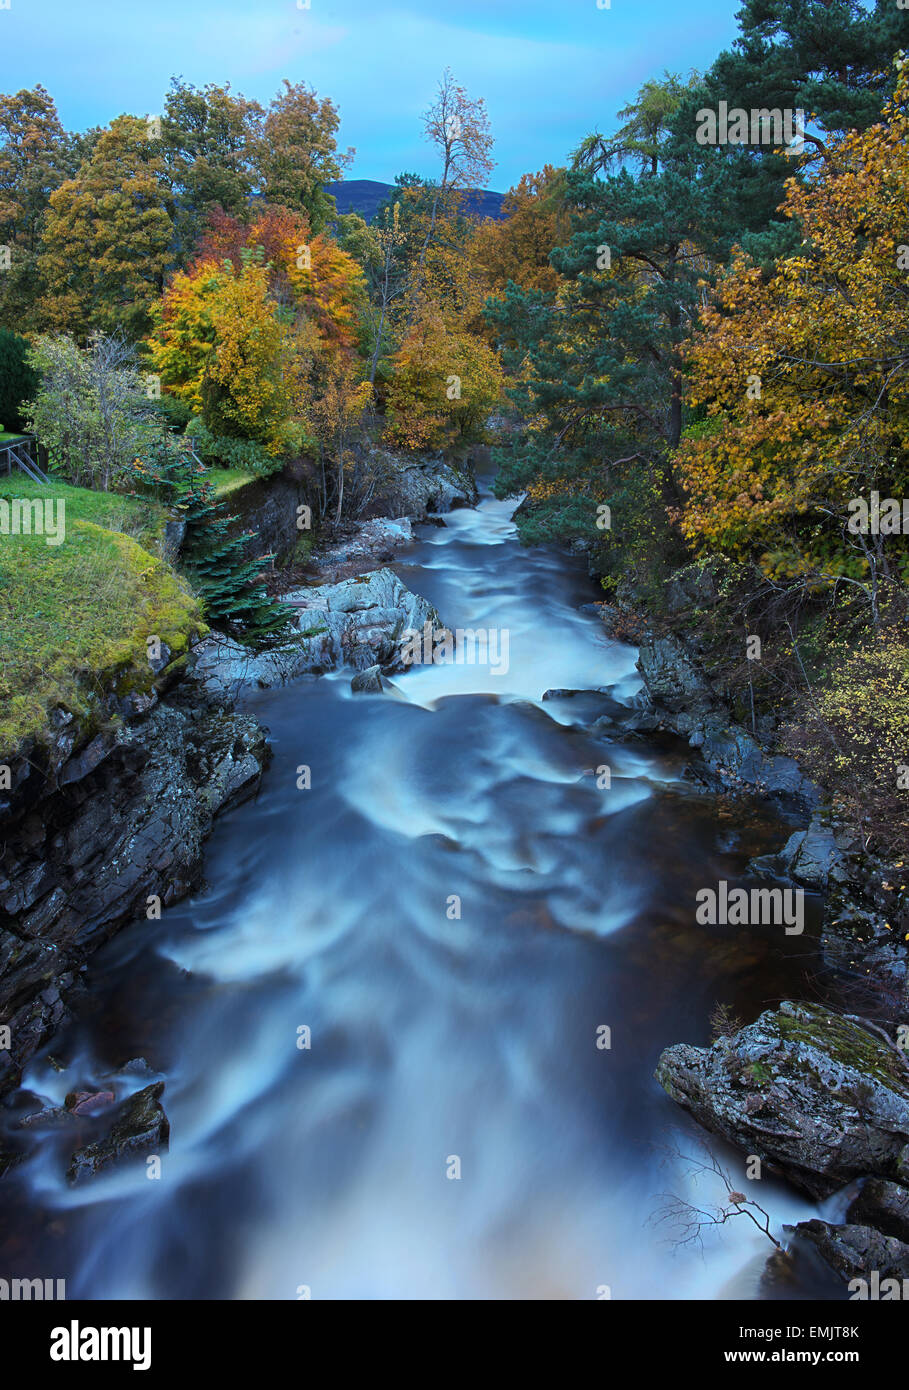 Clunie Water in the village of Braemar, Scottish Highlands, with autumn colour. - Stock Image